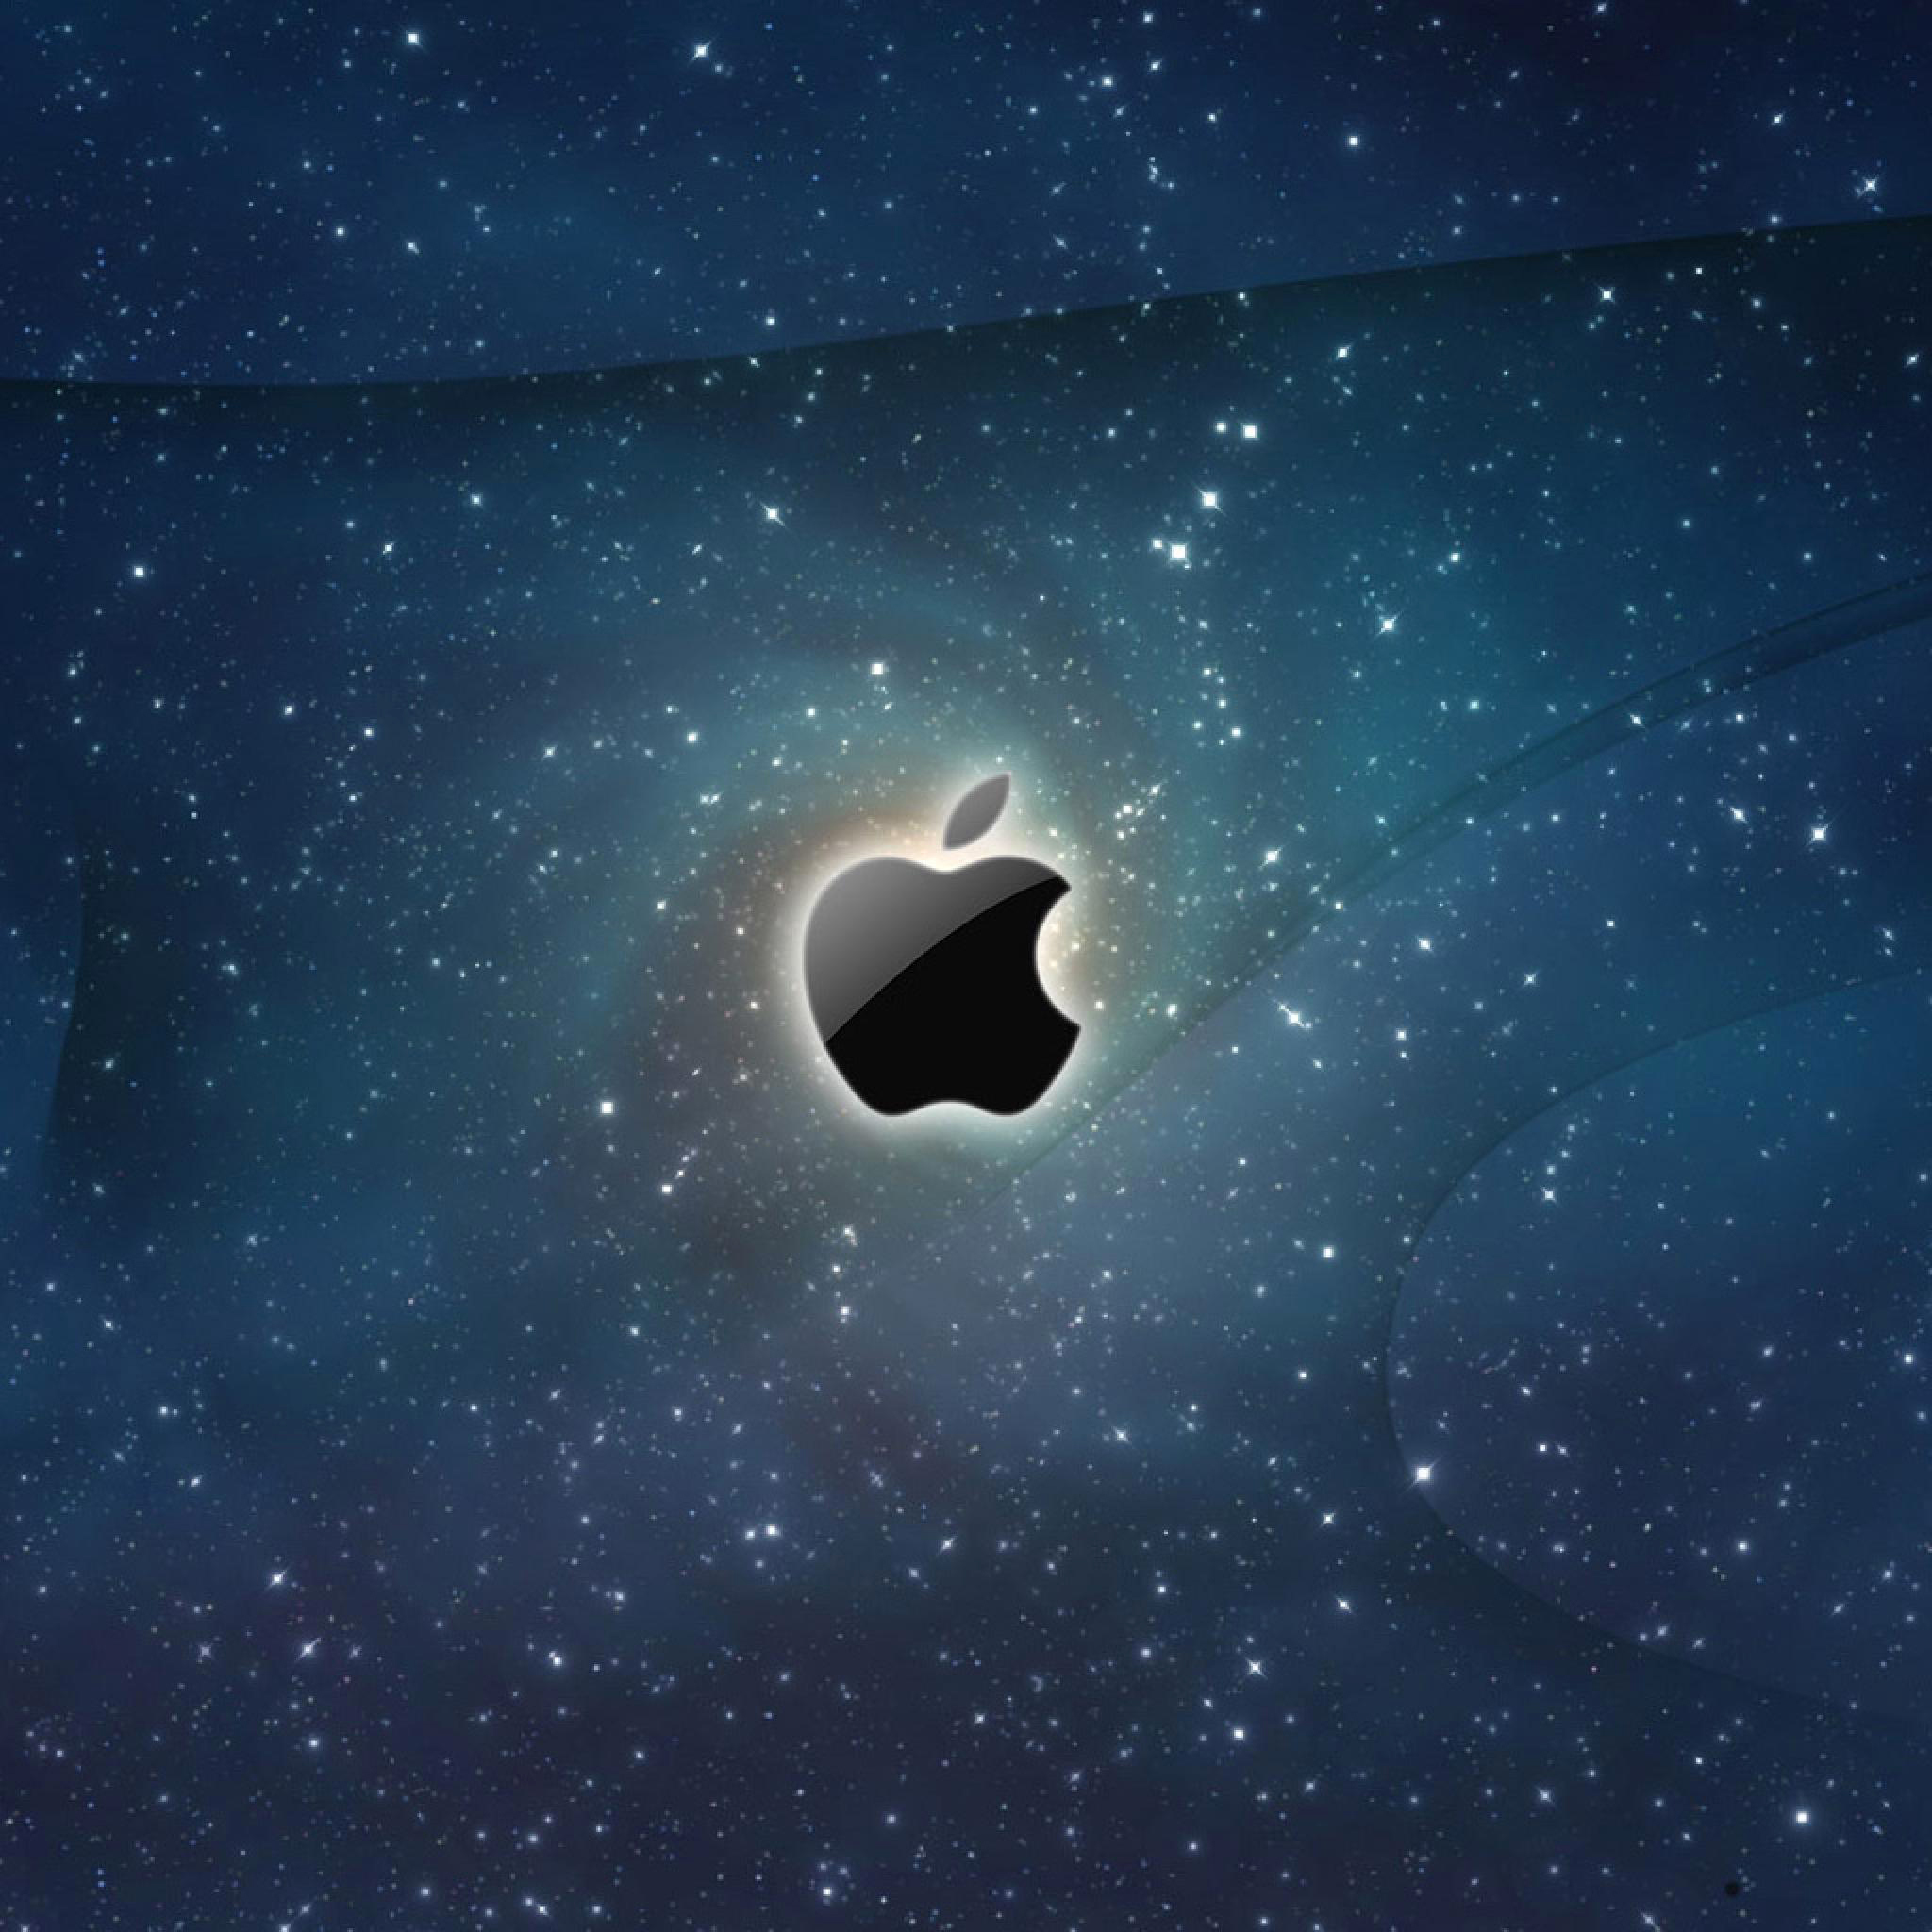 Apple-Galaxy-3Wallpapers-iPad-Retina